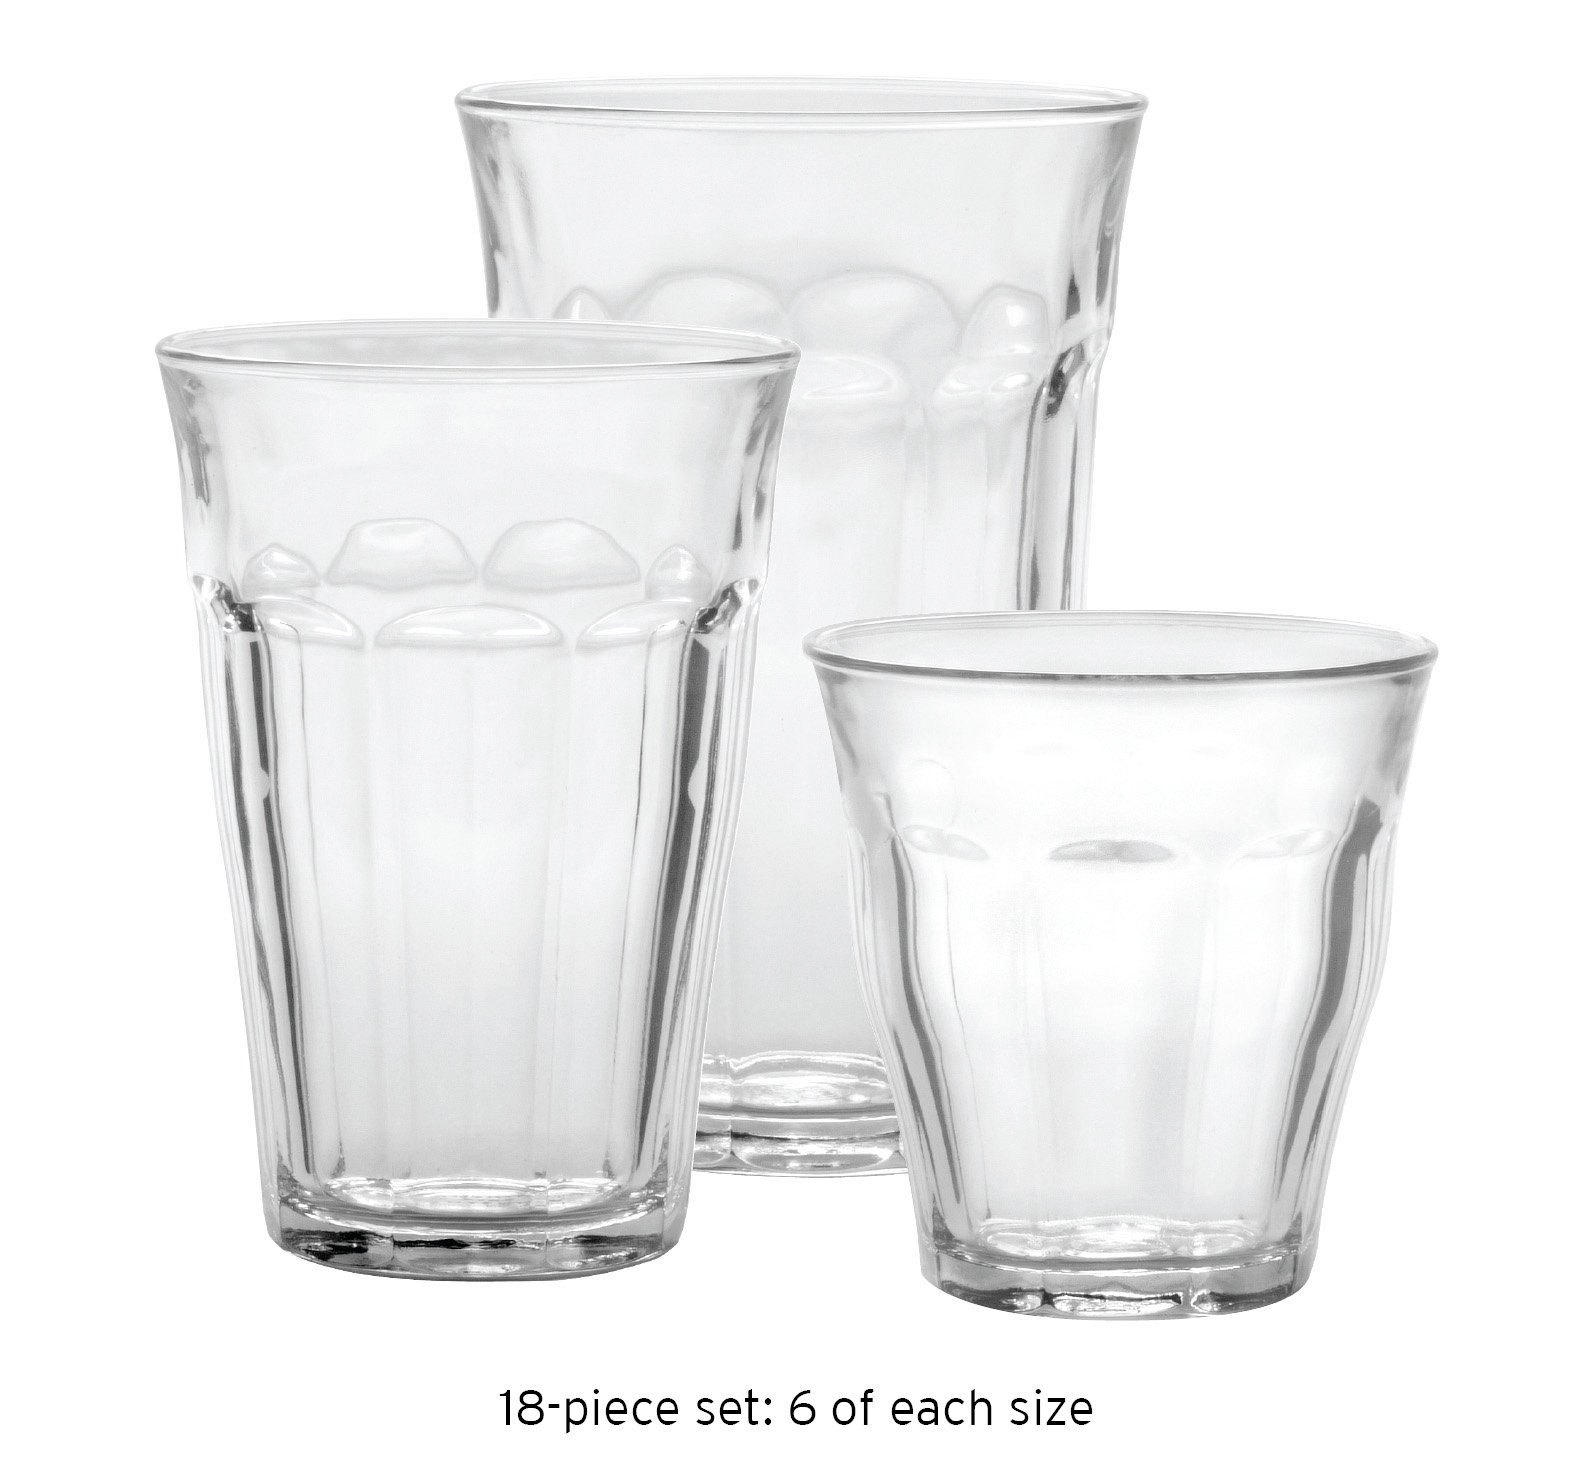 Duralex Picardie Glass Tumblers French Bistro 18Pc Set by Duralex (Image #1)